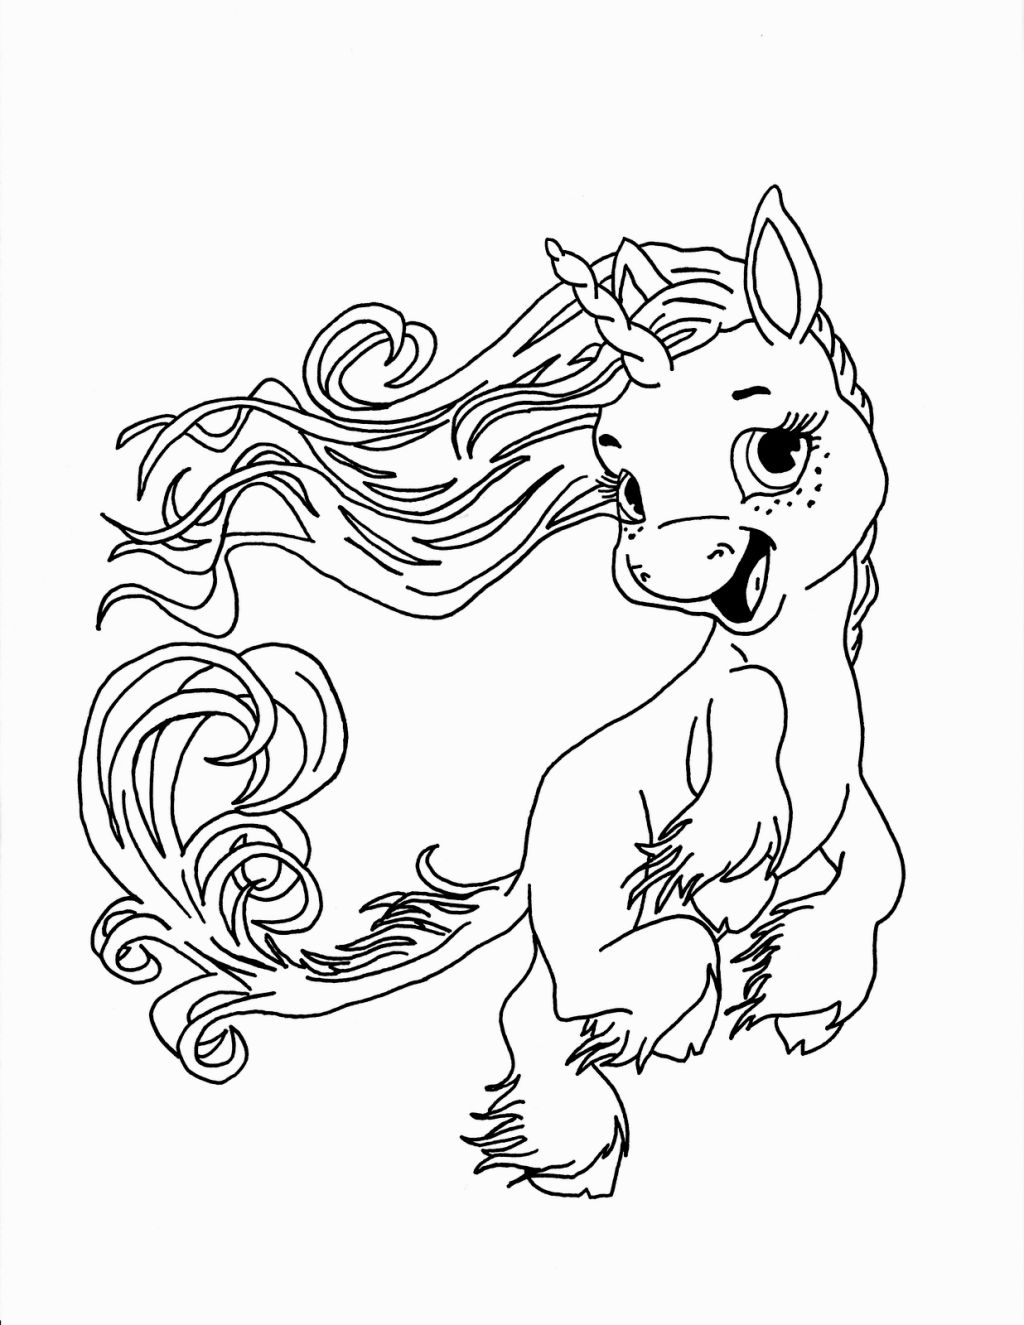 Coloring Pages On Pinterest Unicorn Coloring Pages Pinterest